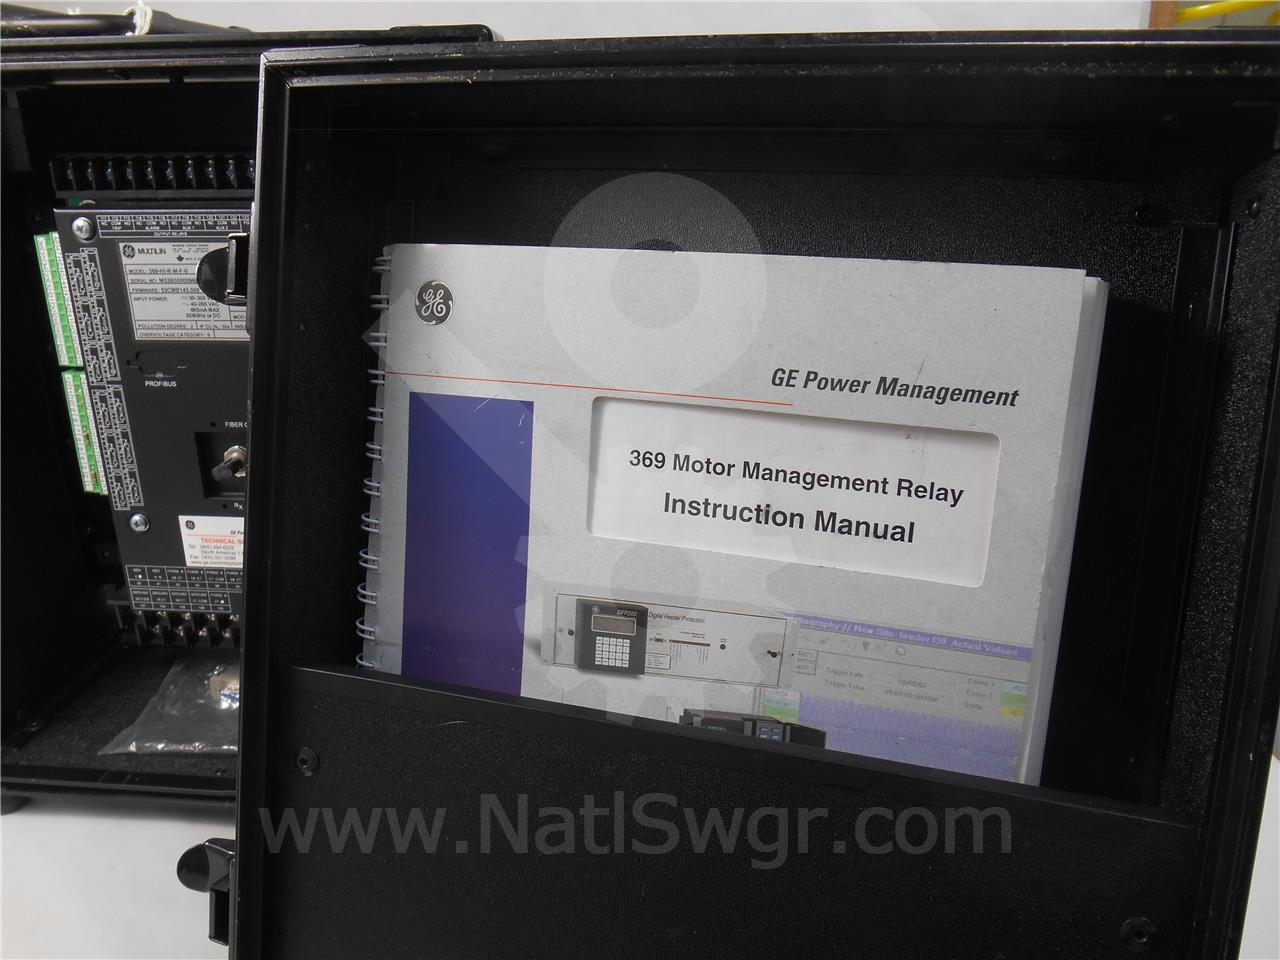 General Electric Ge 369 Multilin Motor Management Relay Training Aid Manuals